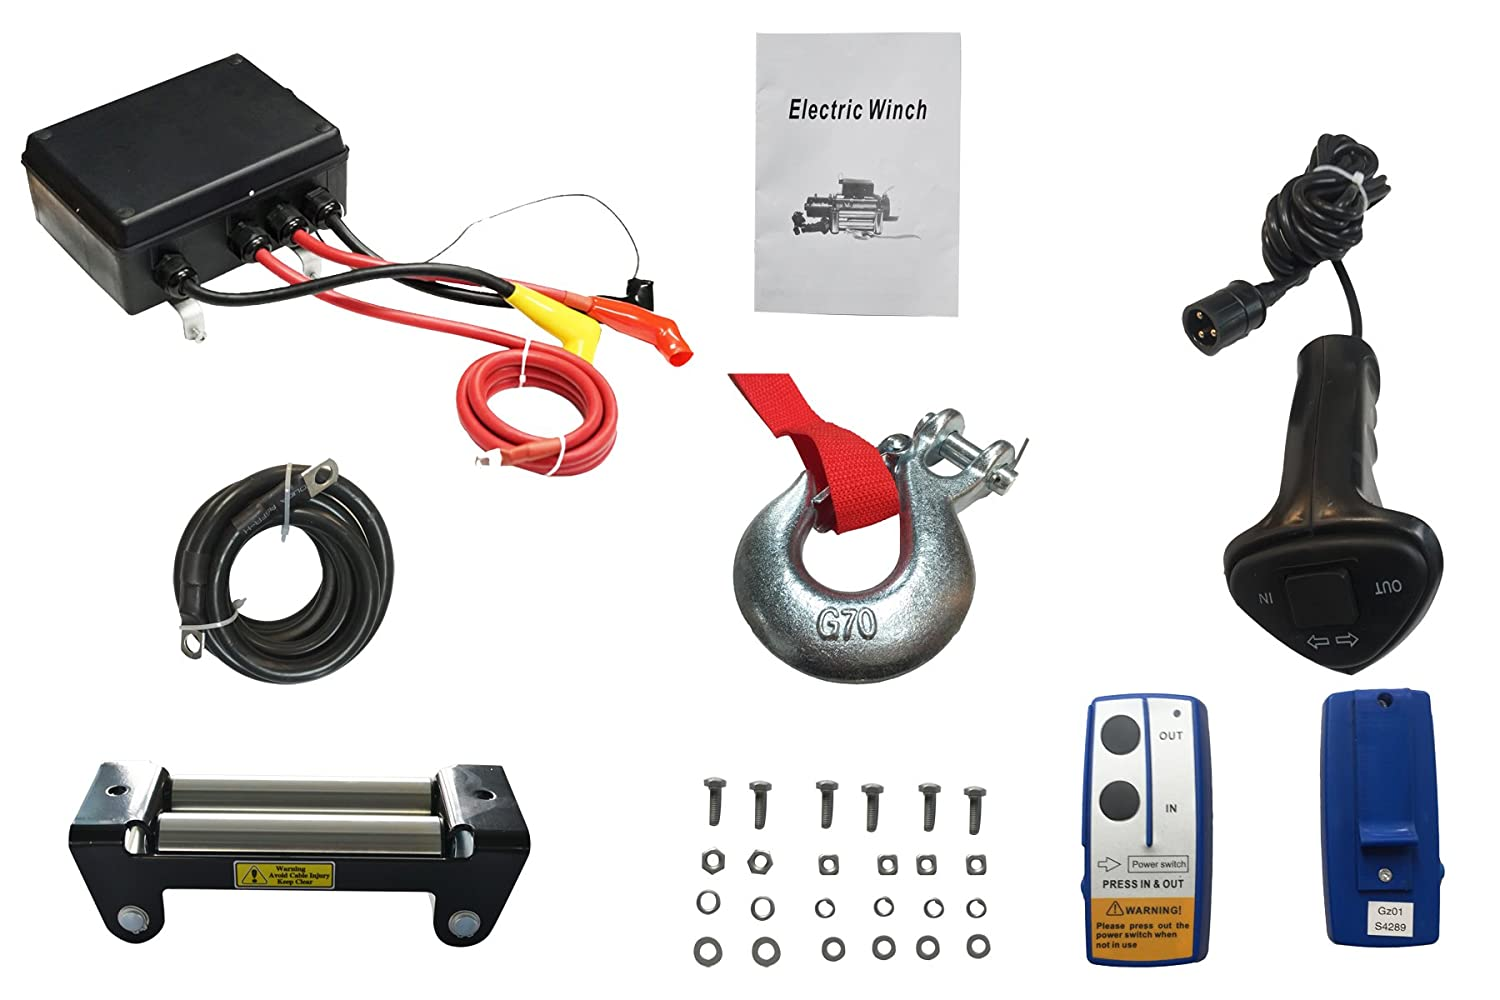 X Bull 12v Steel Cable Electric Winch 12000 Lb Load Capacity Motor Wiring Diagram Automotive